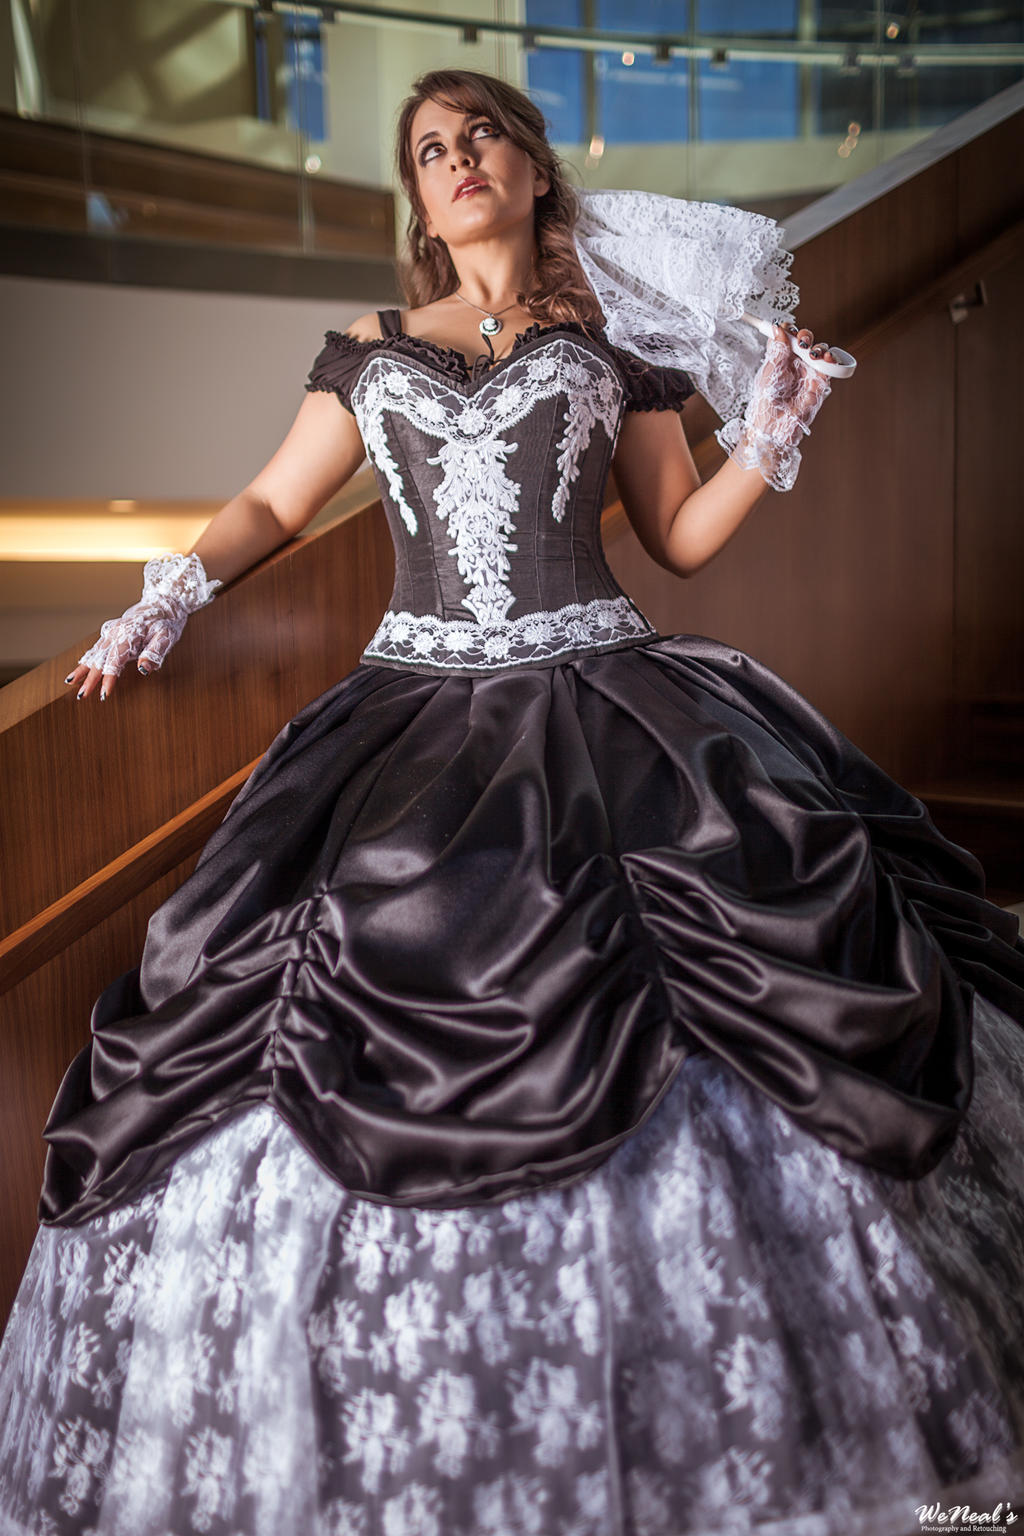 Anomay Con 2015 - Victorian Ball Gown 2 by PhoenixForce85 on DeviantArt